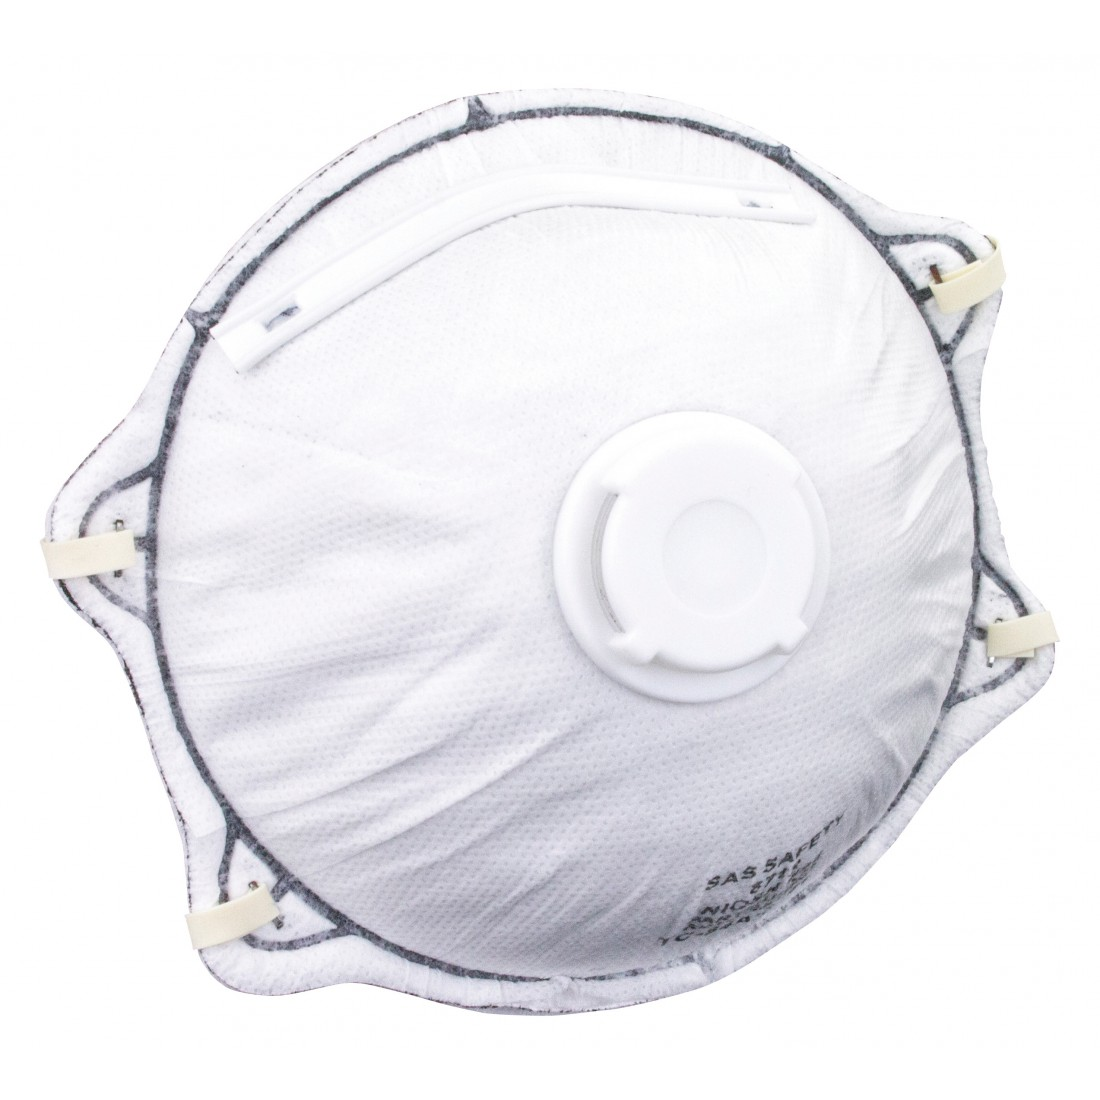 N95_Valved_Active_Carbon_Particulate_Respiator_SAS_Safety